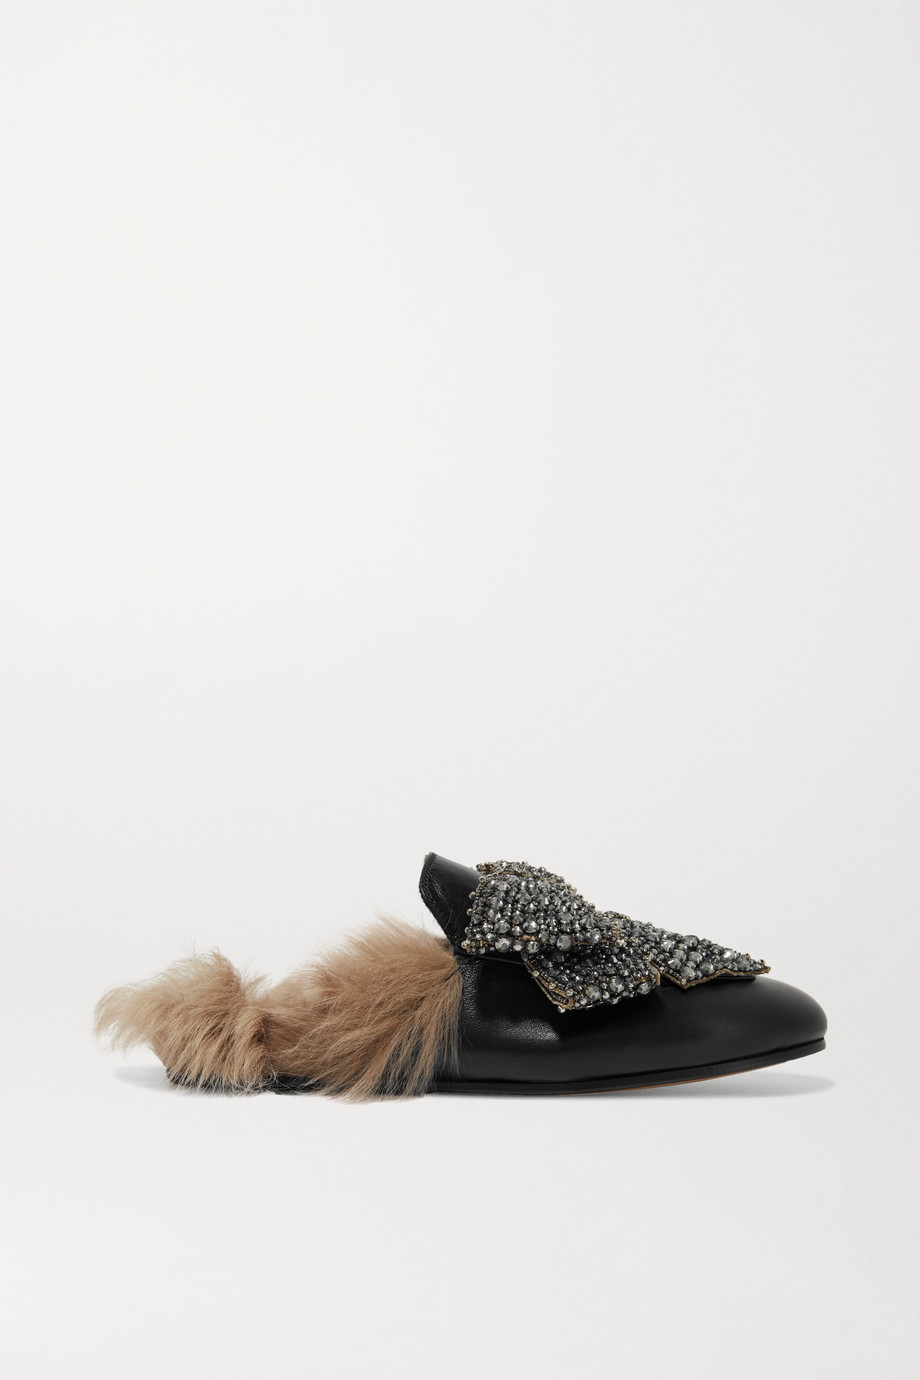 Gucci Princetown shearling-lined embellished leather slippers